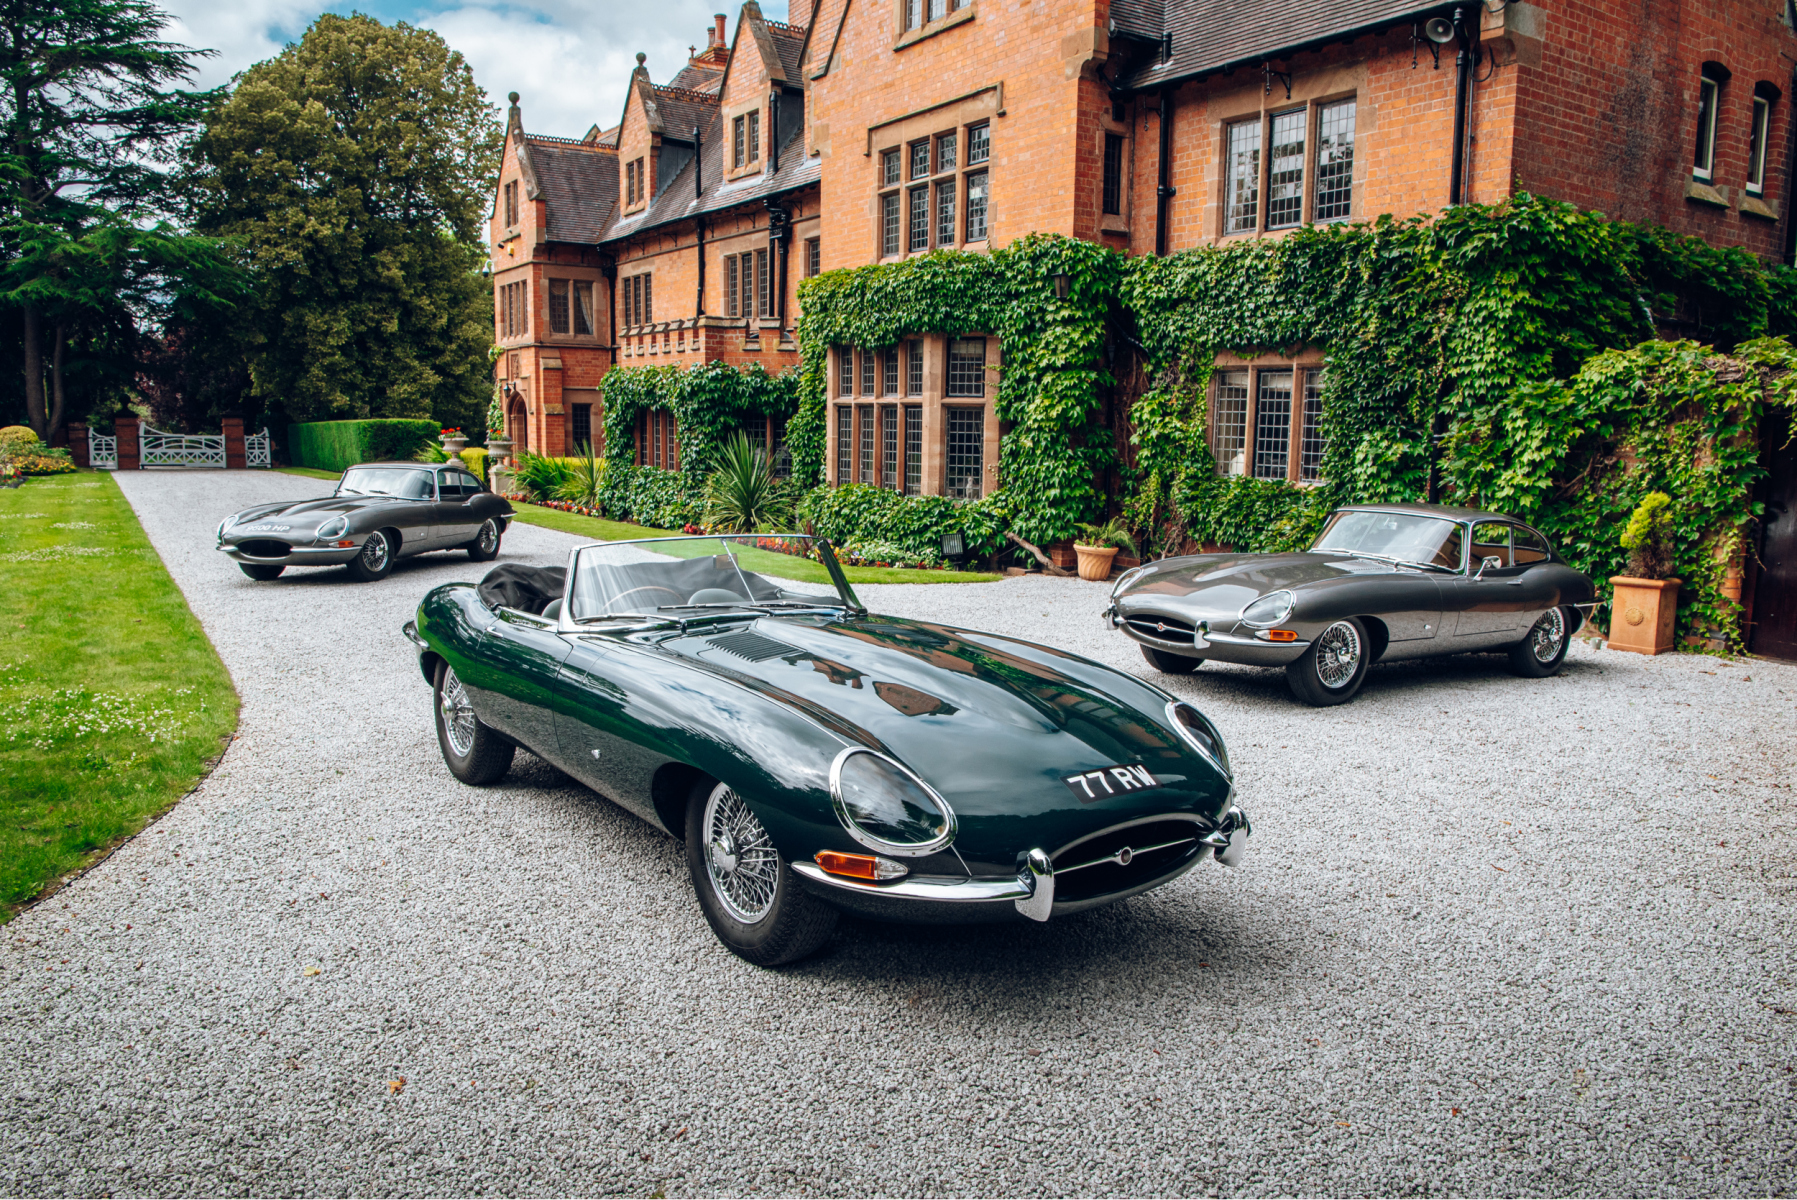 Original Geneva Motor Show launch Jaguar E-Types reunited at the home of their maker, 60 years after their debut